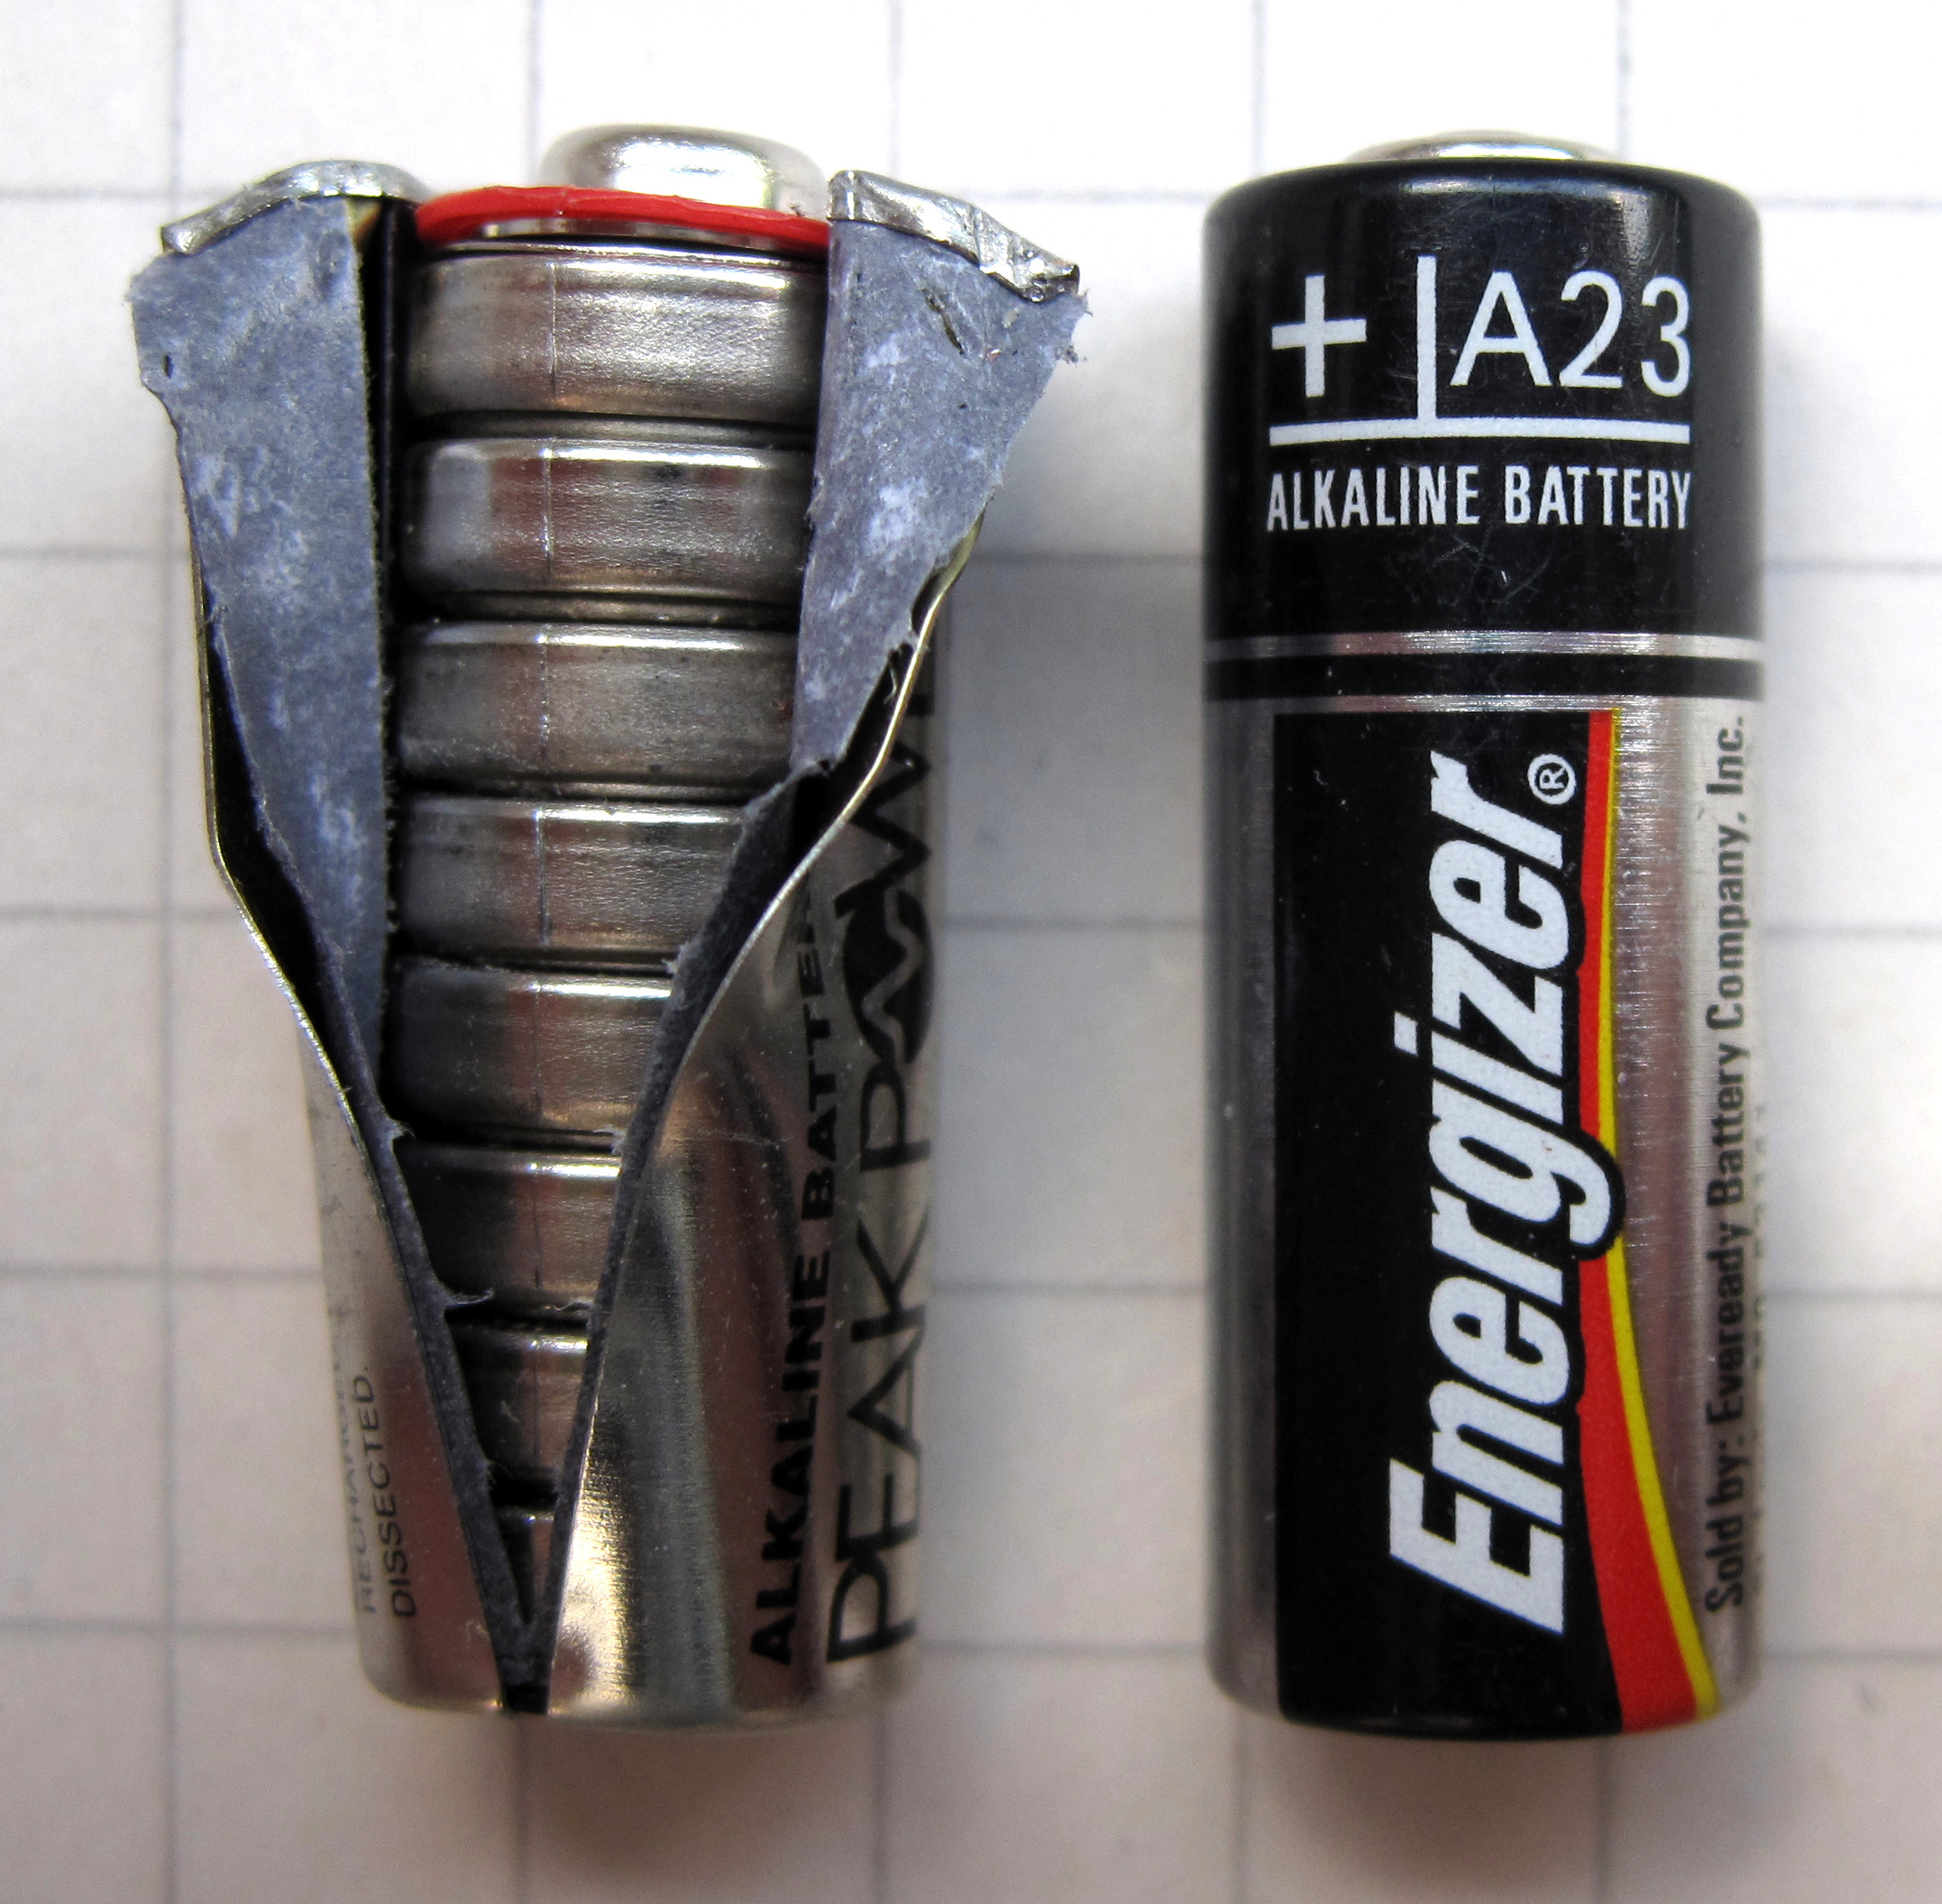 Carefully Peel A 9V Battery To Find Smaller Batteries